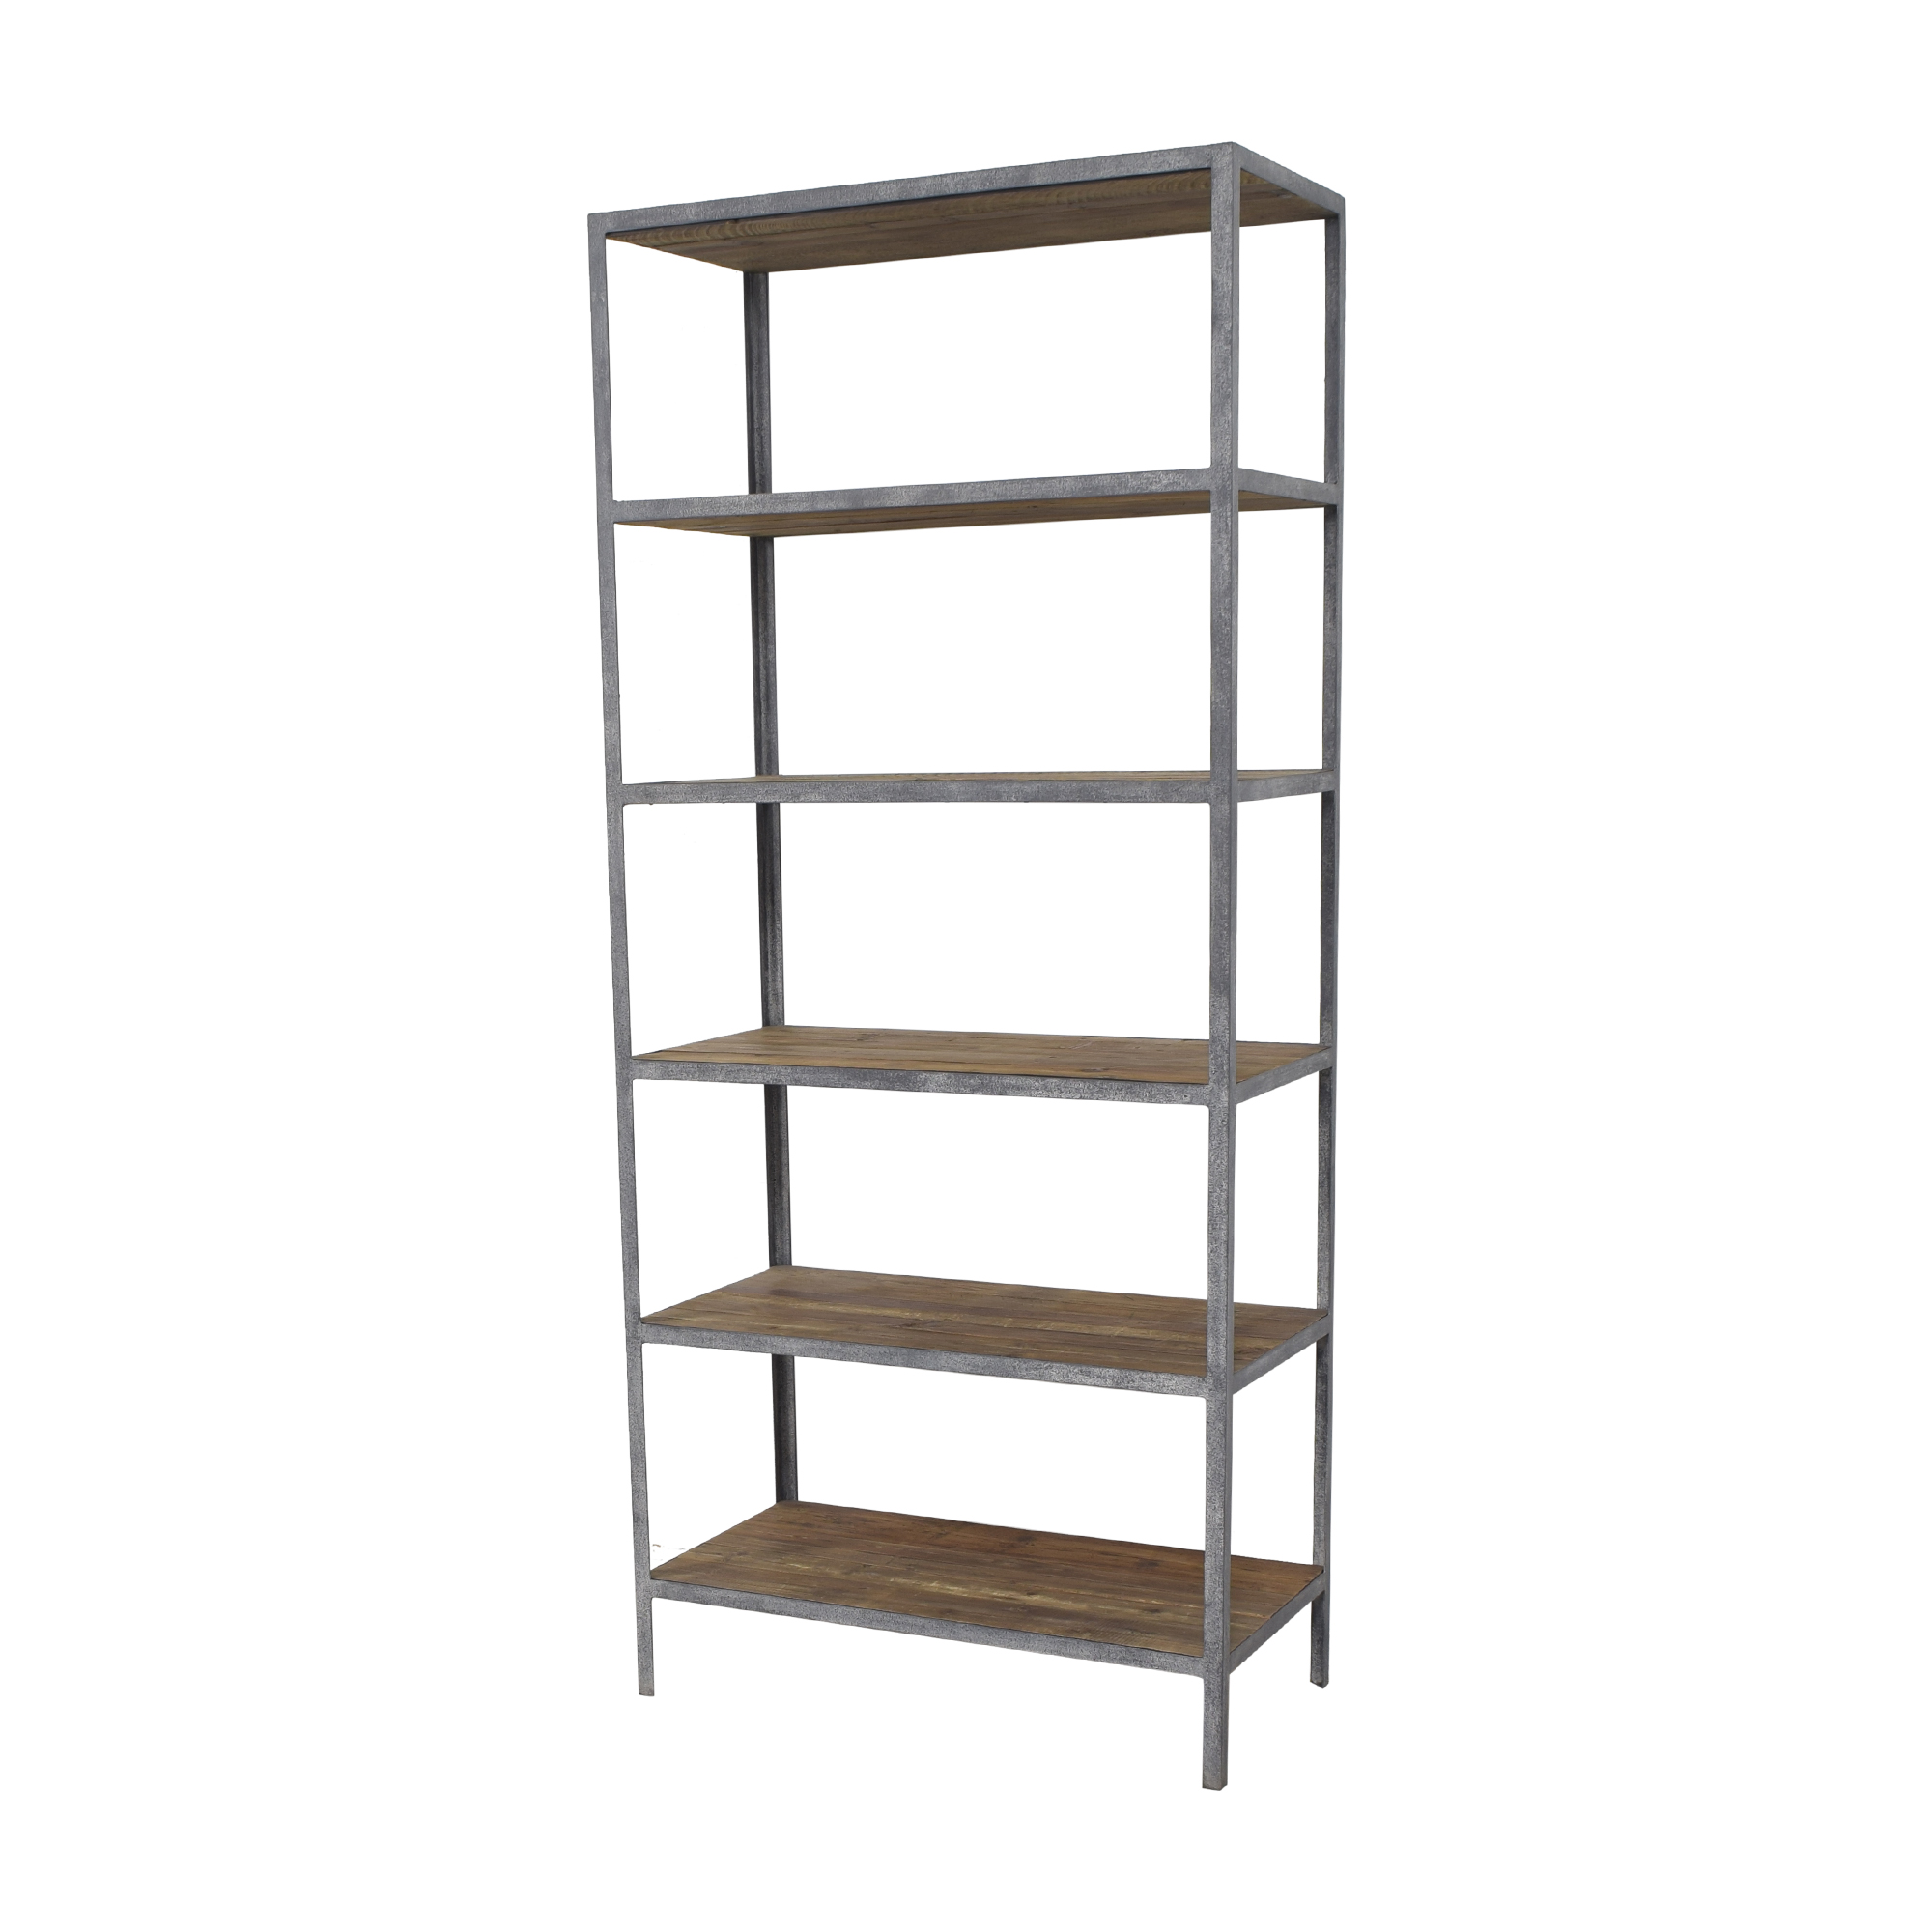 Restoration Hardware Restoration Hardware Vintage Industrial Single Shelving ct